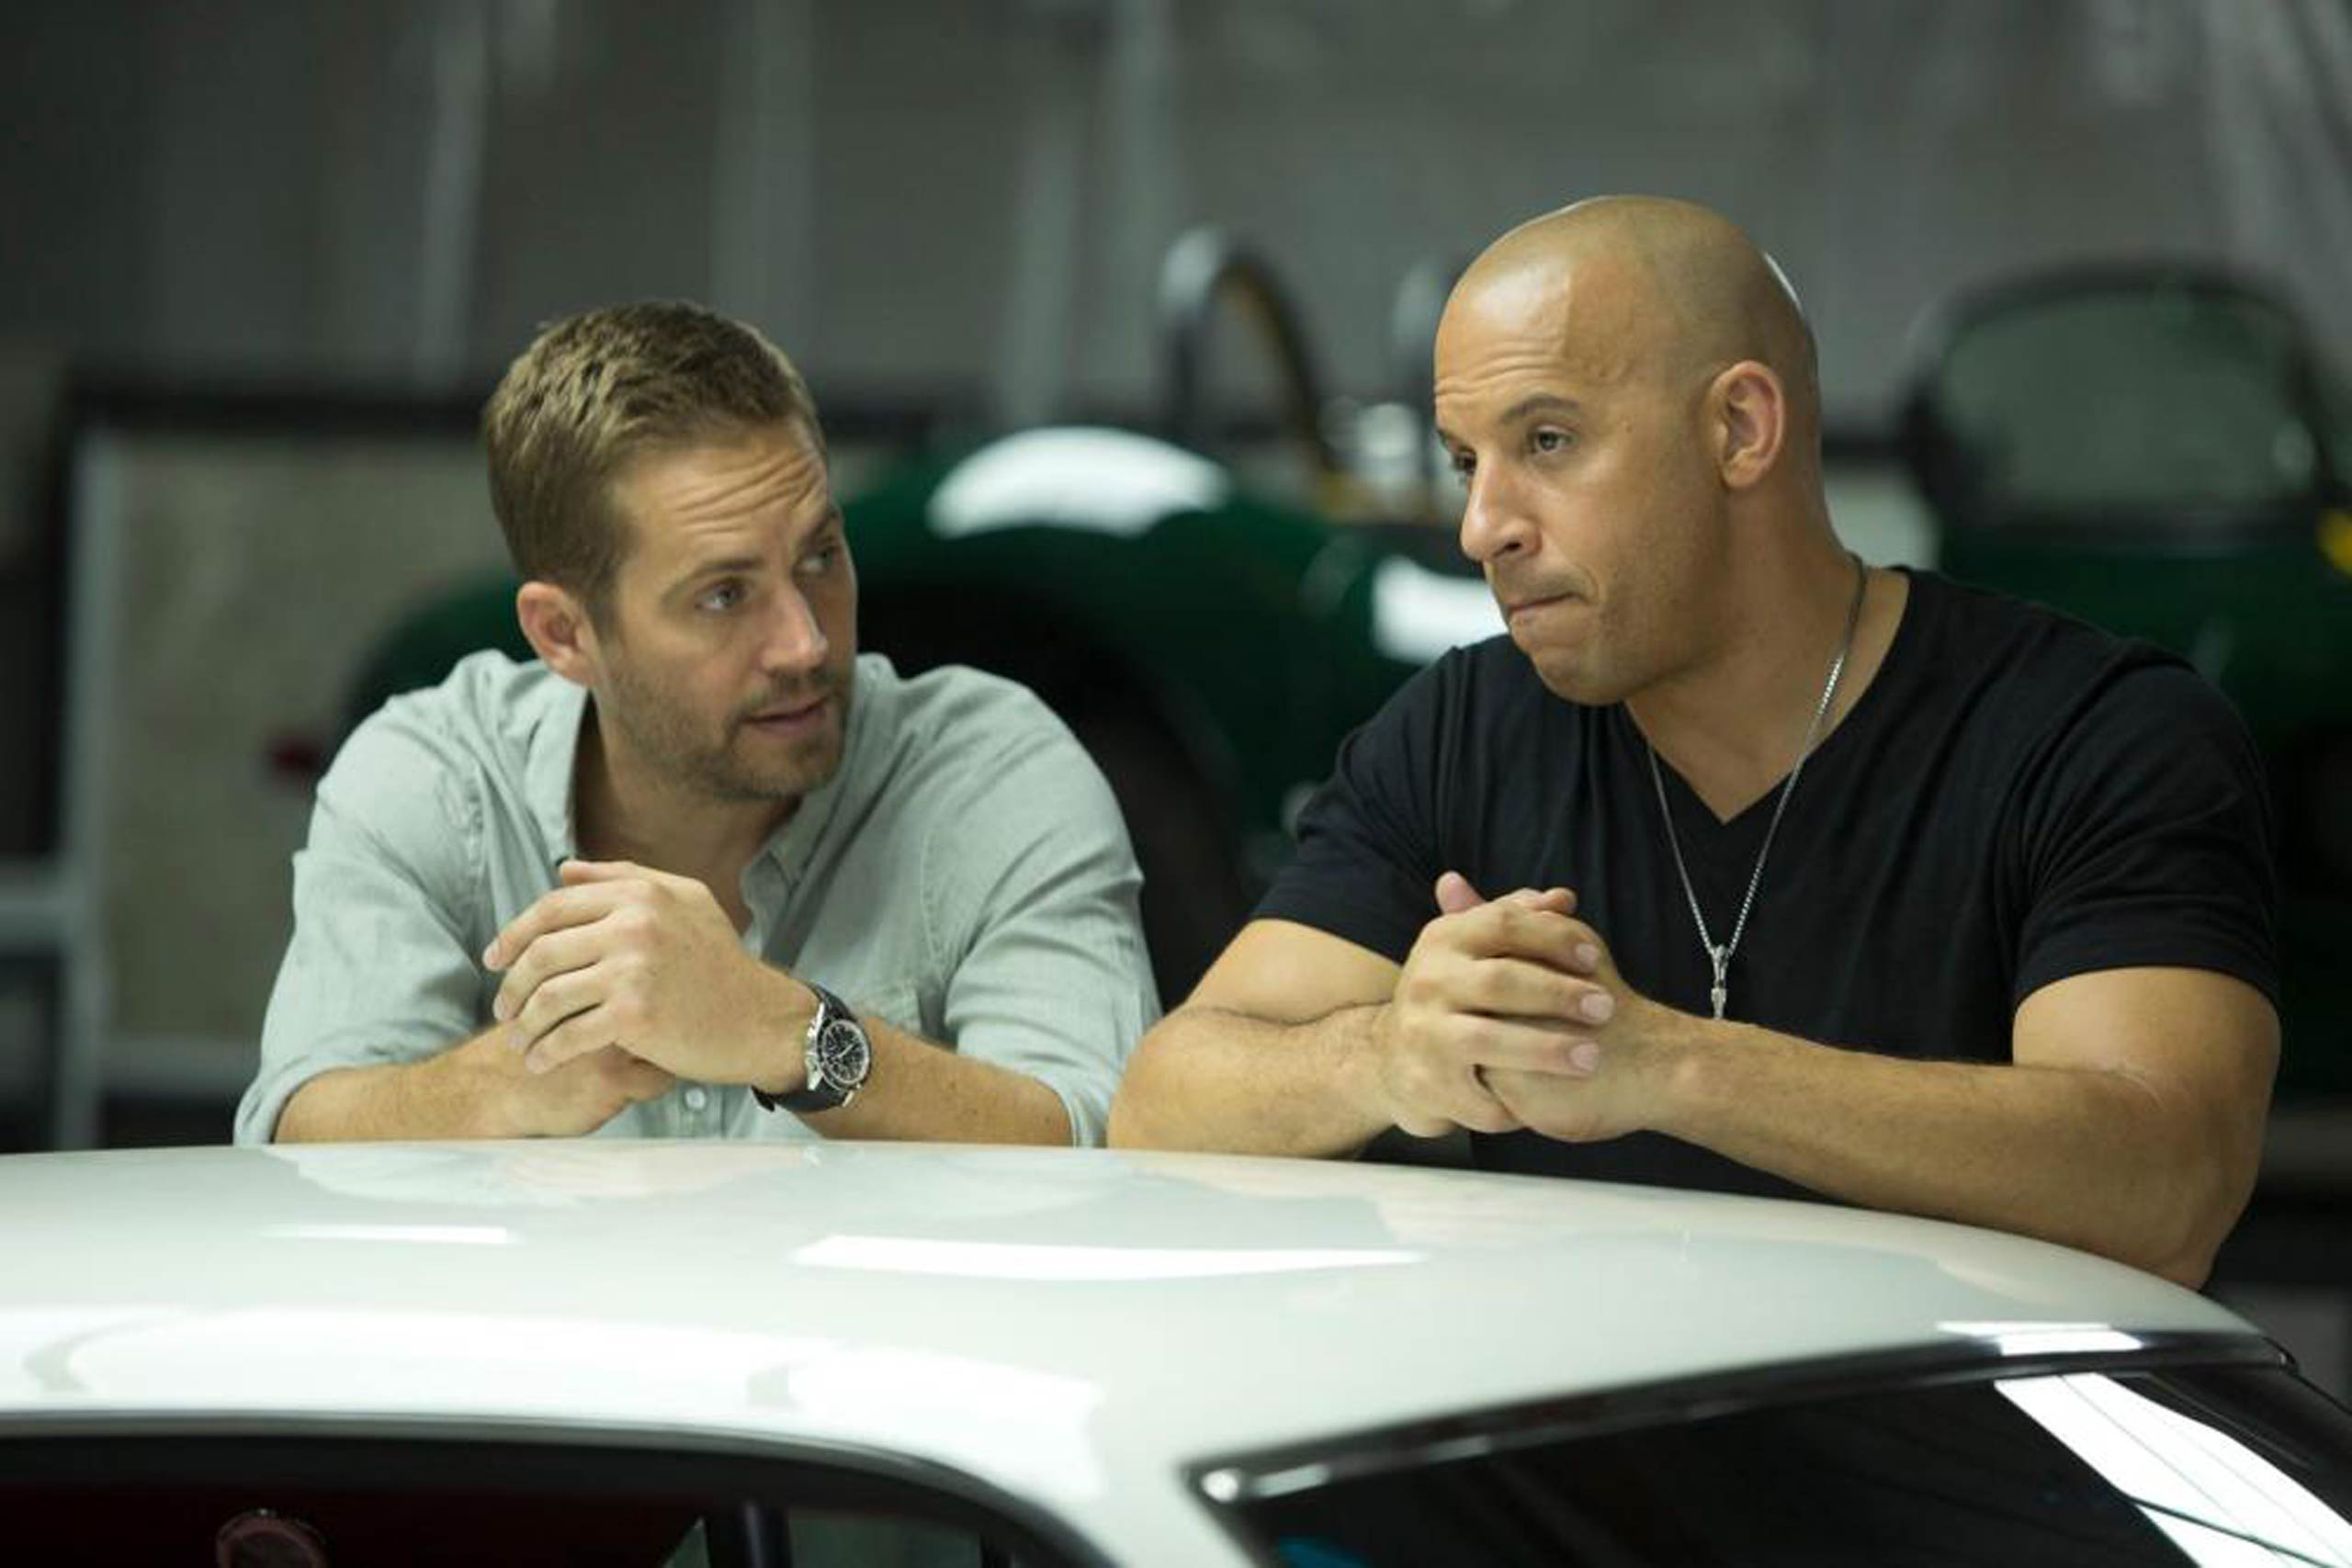 <strong>Brian O'Conner and Dominic Toretto in <i>The Fast and the Furious</i></strong>